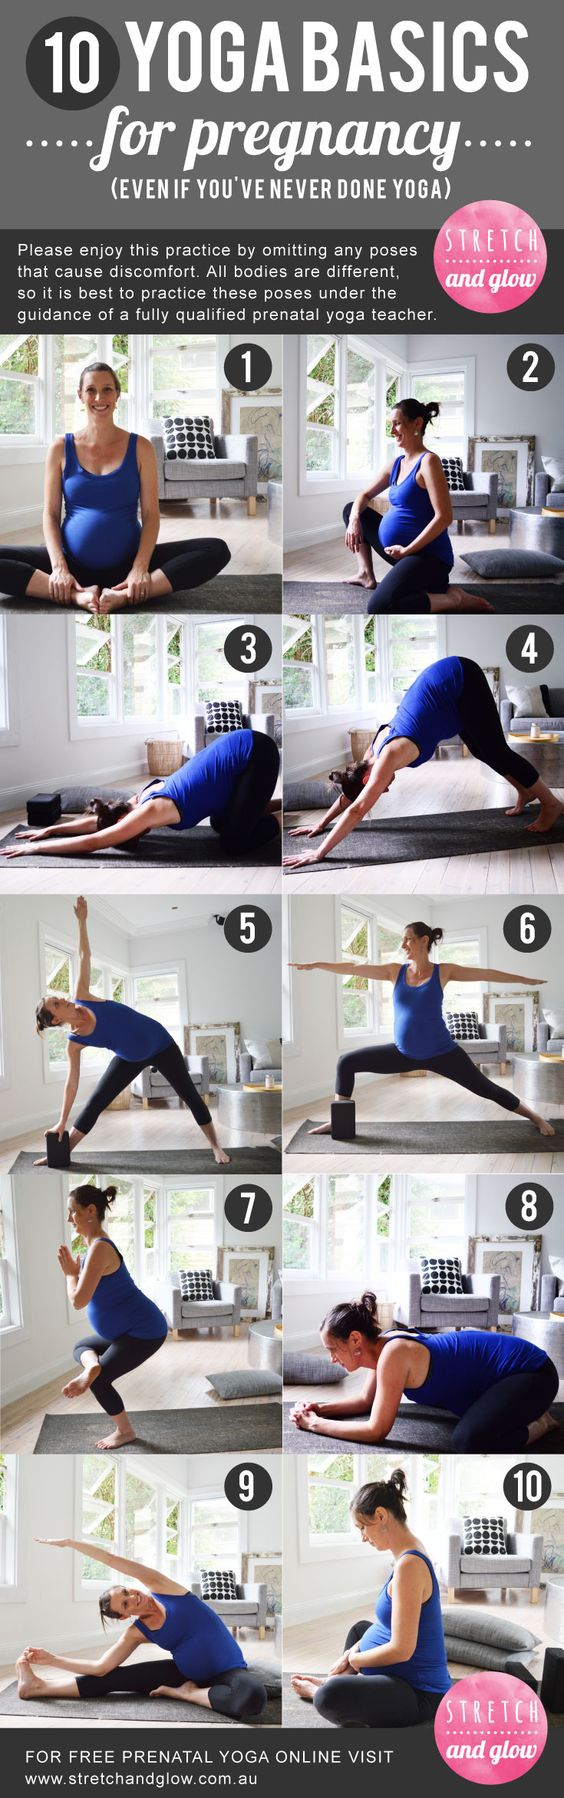 10 YOGA BASICS FOR PREGNANCY